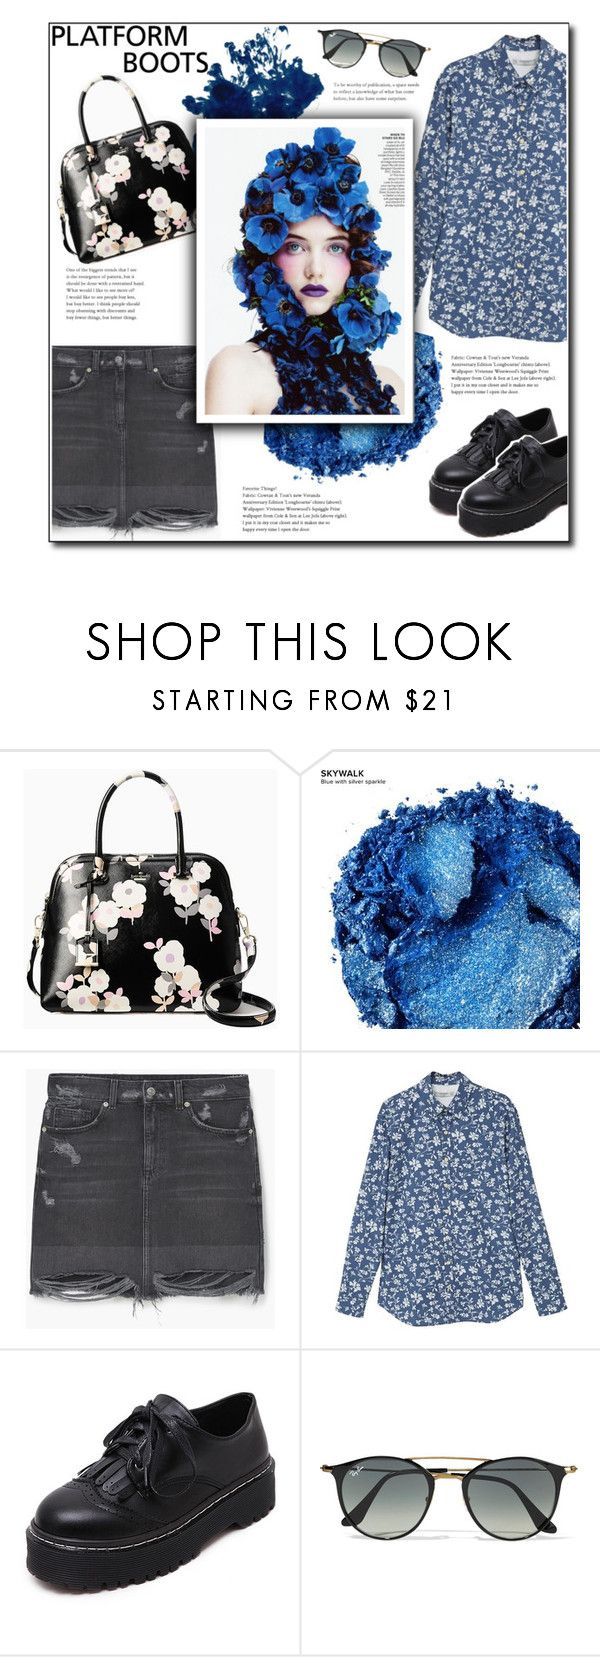 """""""Floral shirt + platform shoes"""" by w-wildroses-s ❤ liked on Polyvore featuring Kate Spade, Urban Decay, MANGO, WithChic and Ray-Ban"""